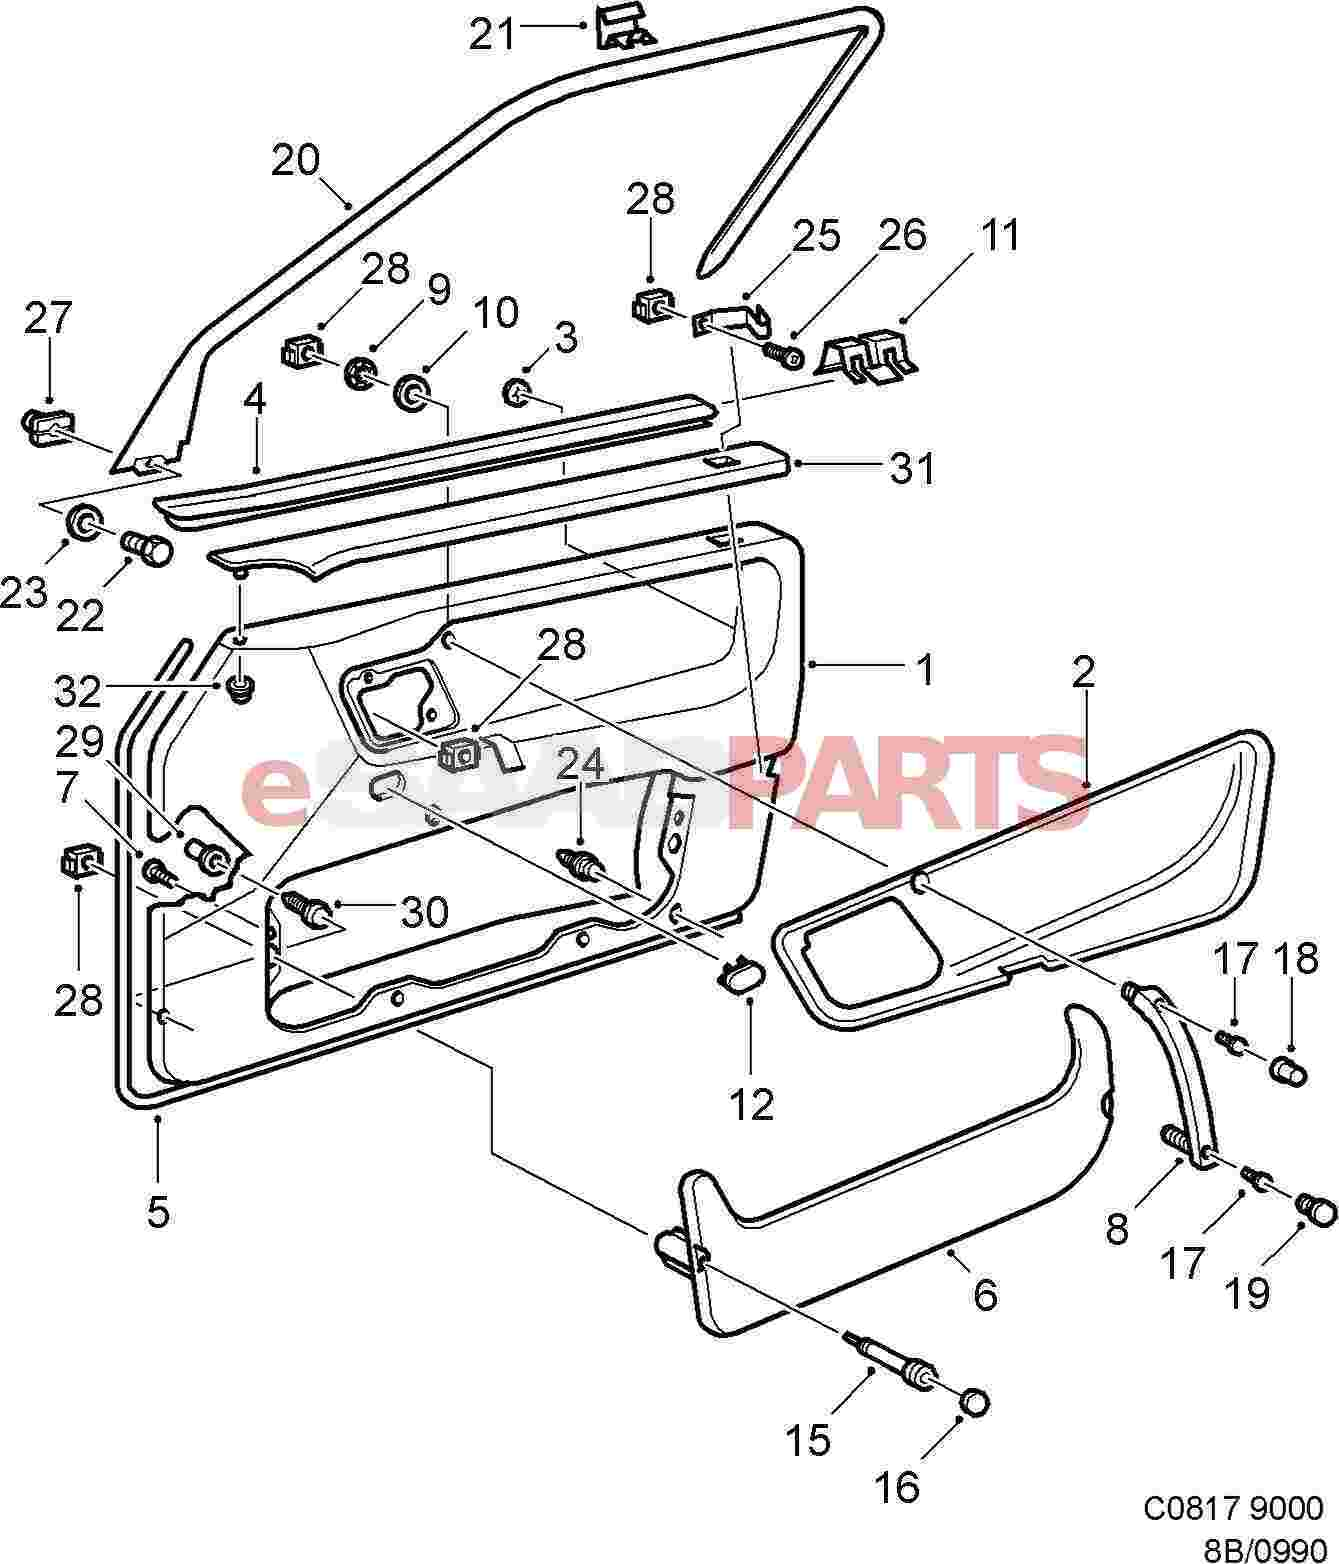 4818936 Saab Door Panel Genuine Saab Parts From Esaabparts